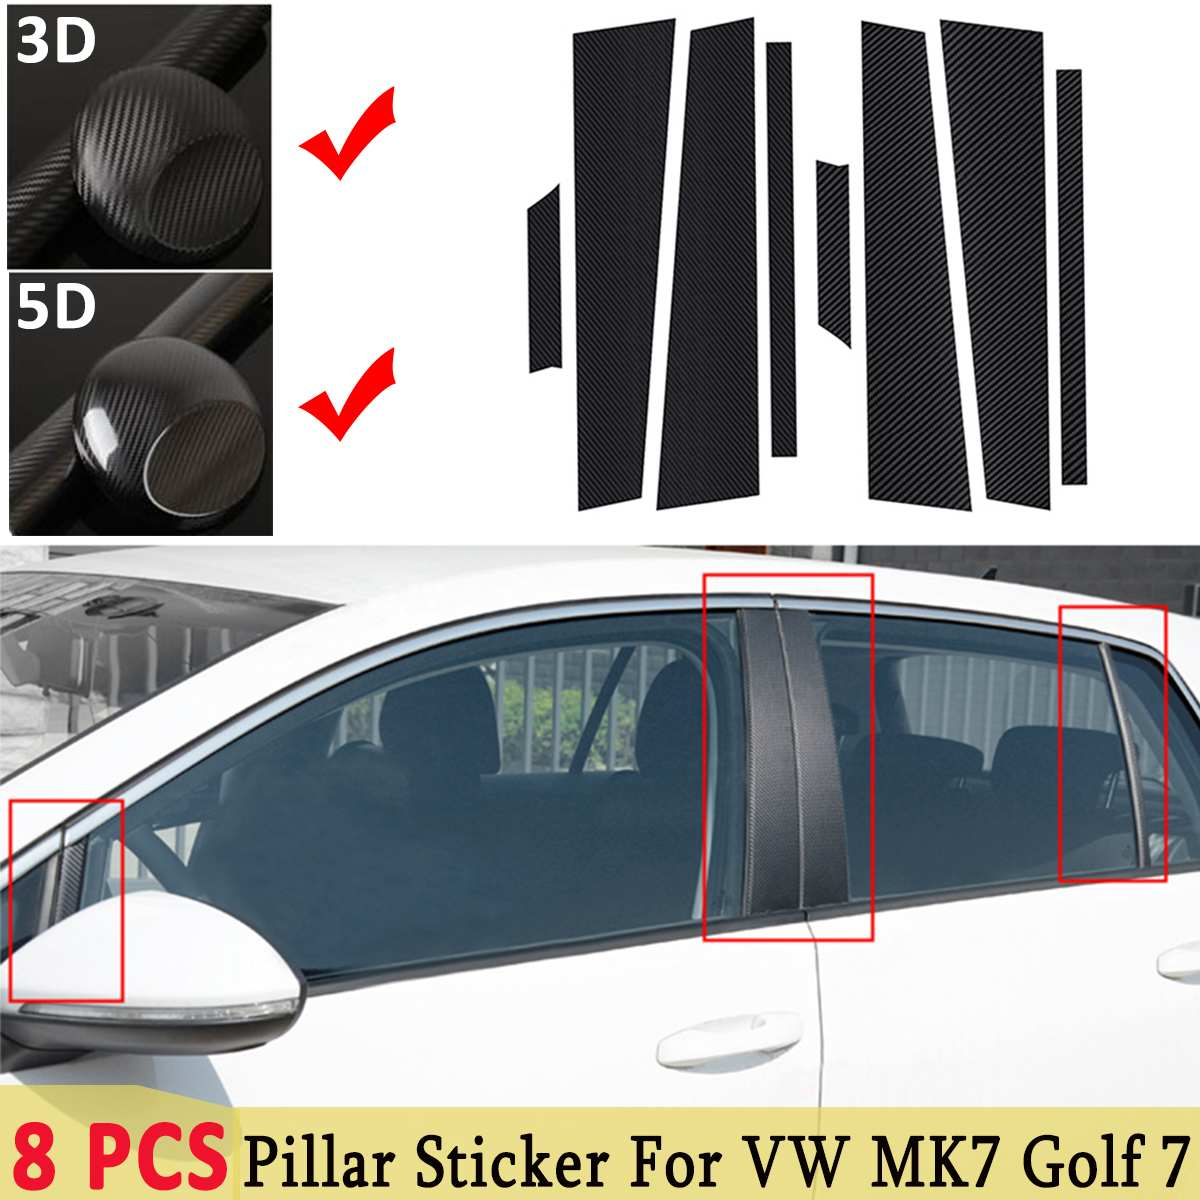 3D / 5D <font><b>Carbon</b></font> Fiber Style Auto Window Frame ABC Pillar Film Sticker Decals Trim For Volkswagen For <font><b>VW</b></font> MK7 <font><b>Golf</b></font> <font><b>7</b></font> Accessories image